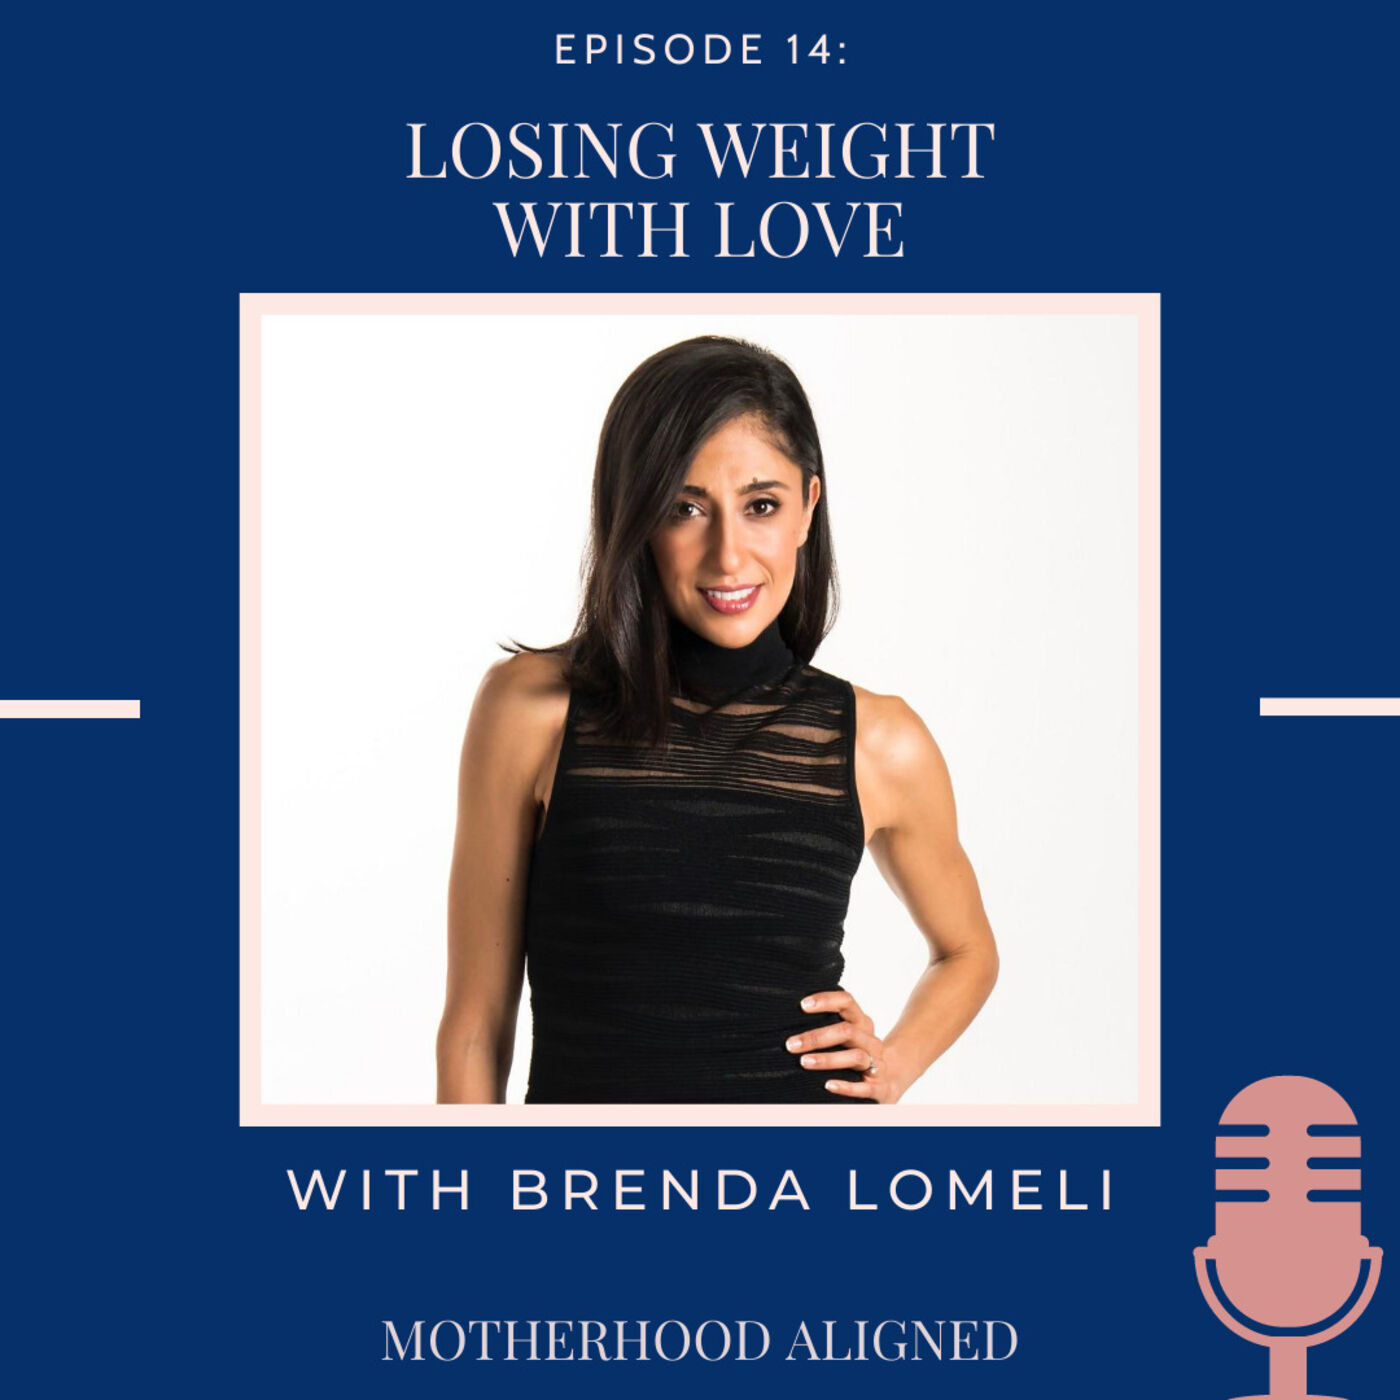 Losing Weight with Love with Brenda Lomeli